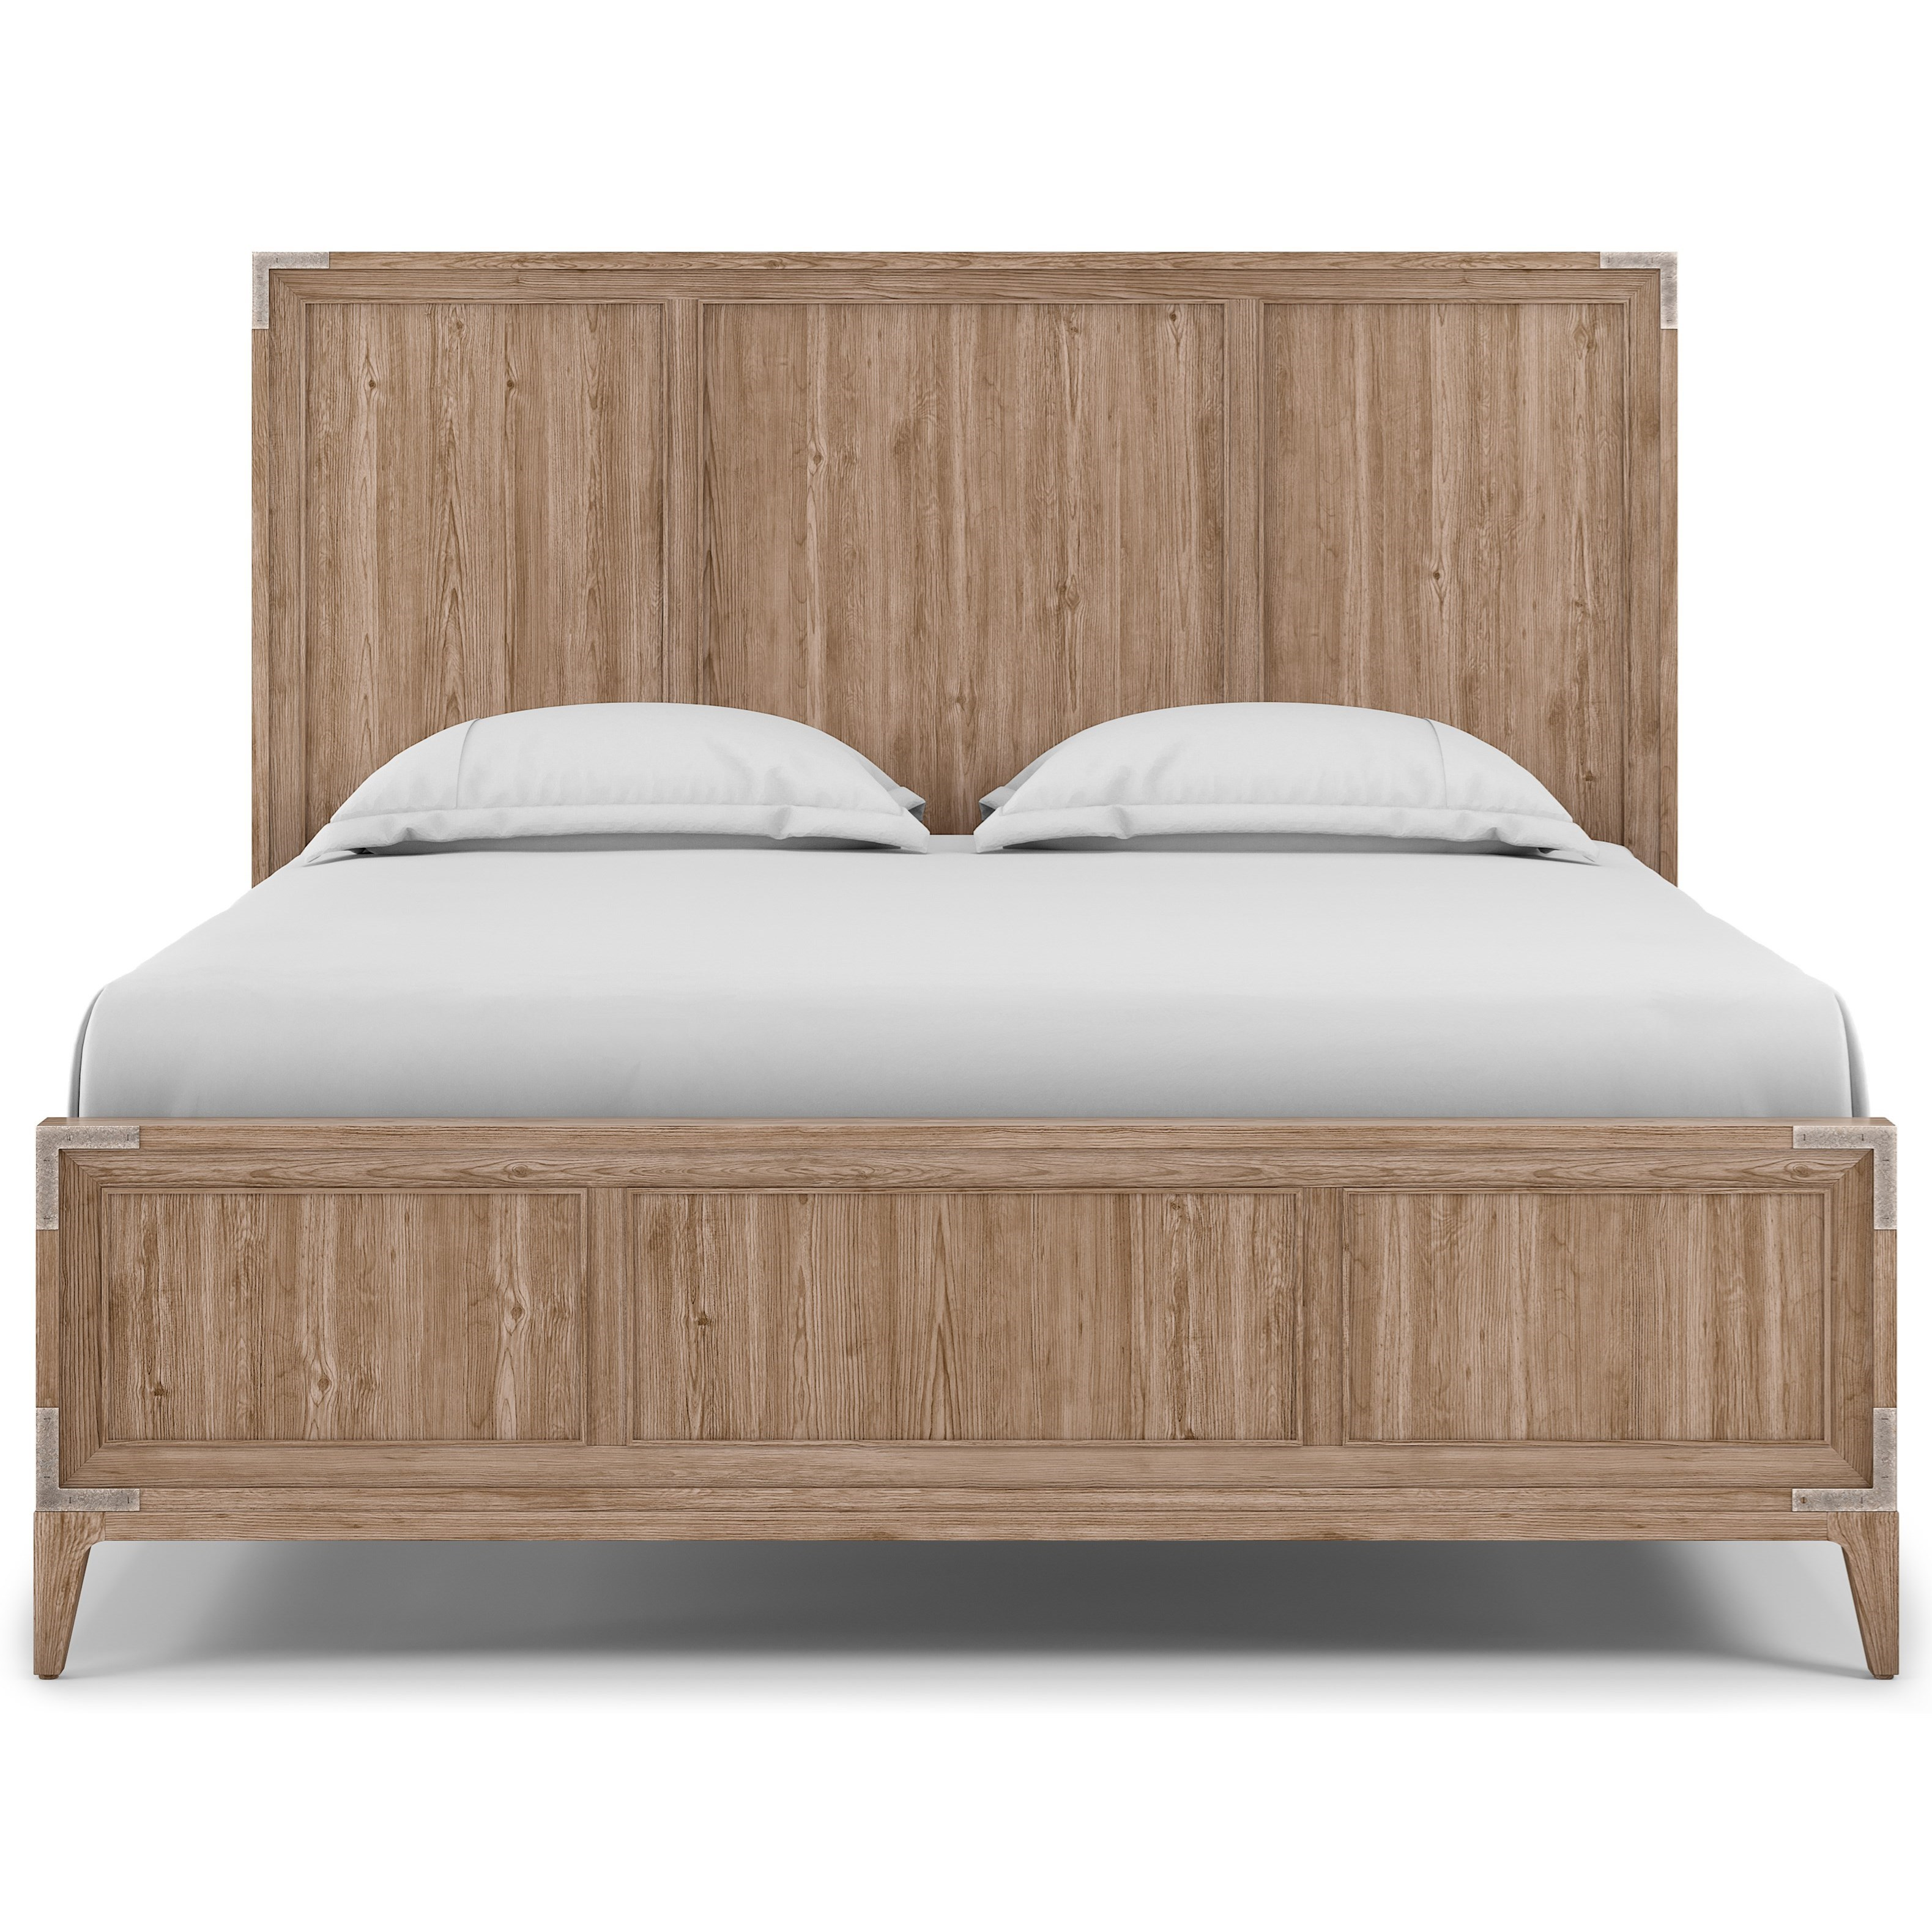 Passage Queen Bed by A.R.T. Furniture Inc at C. S. Wo & Sons California